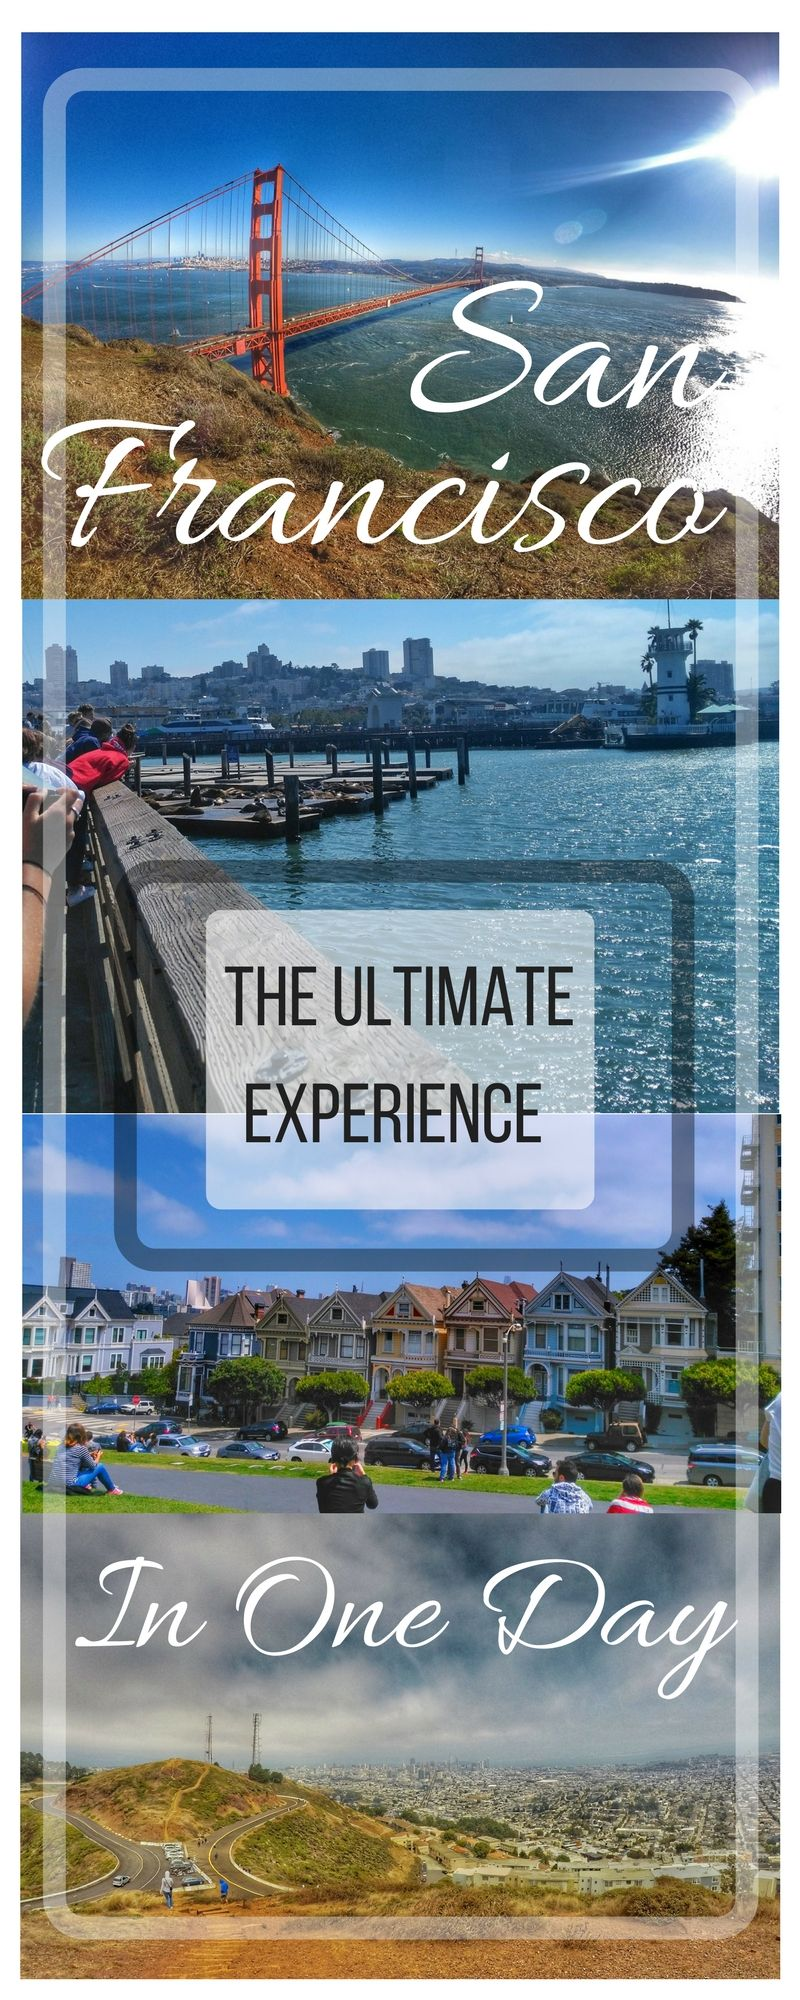 San Francisco Things To Do One Day Full Of Sightseeing And Activities See Pier 39 Fisherman S Warf Eat Clam Chowder Best Views Golden Gate Bridge